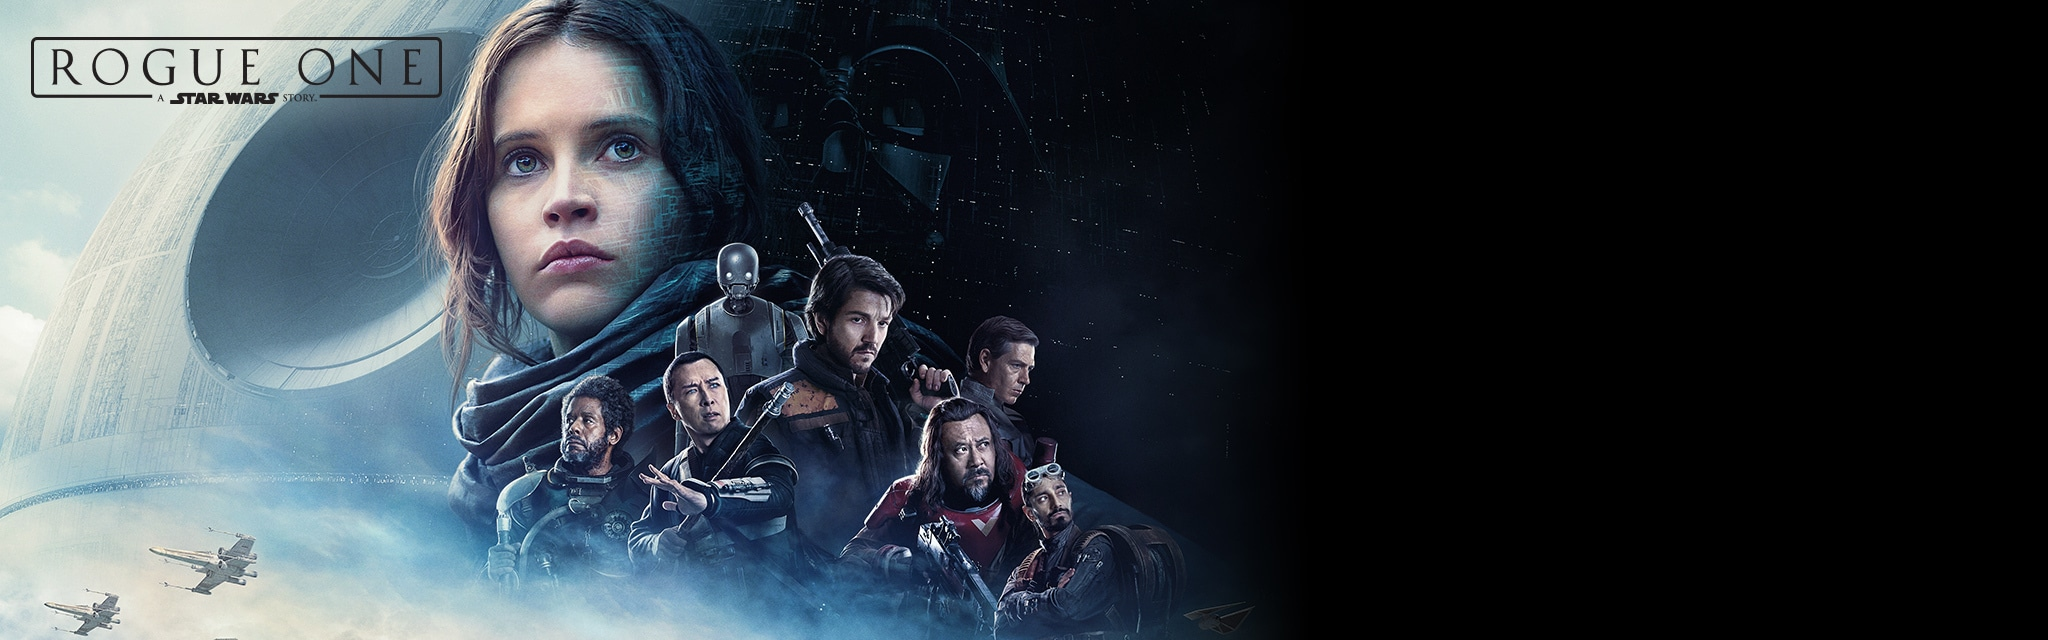 Rogue One - Group Shot - Get Showtimes - Hero - MY